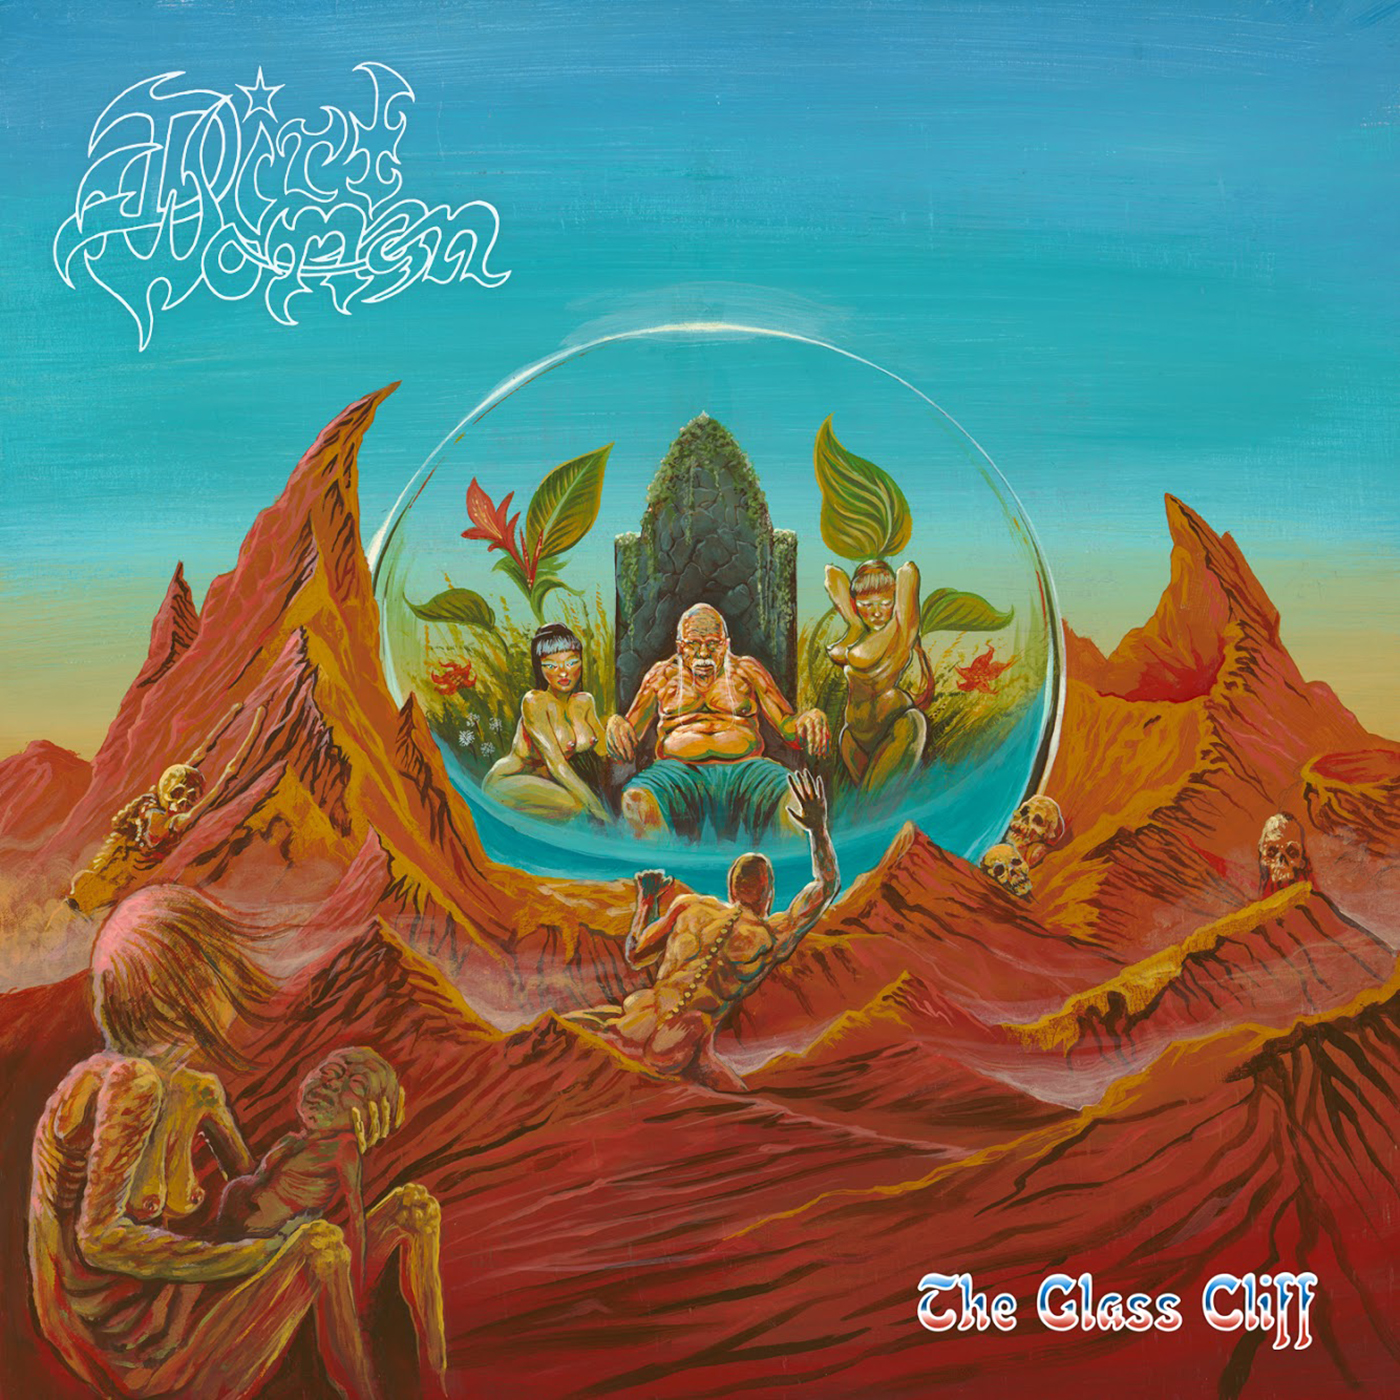 DIRT WOMAN - The Glass Cliff